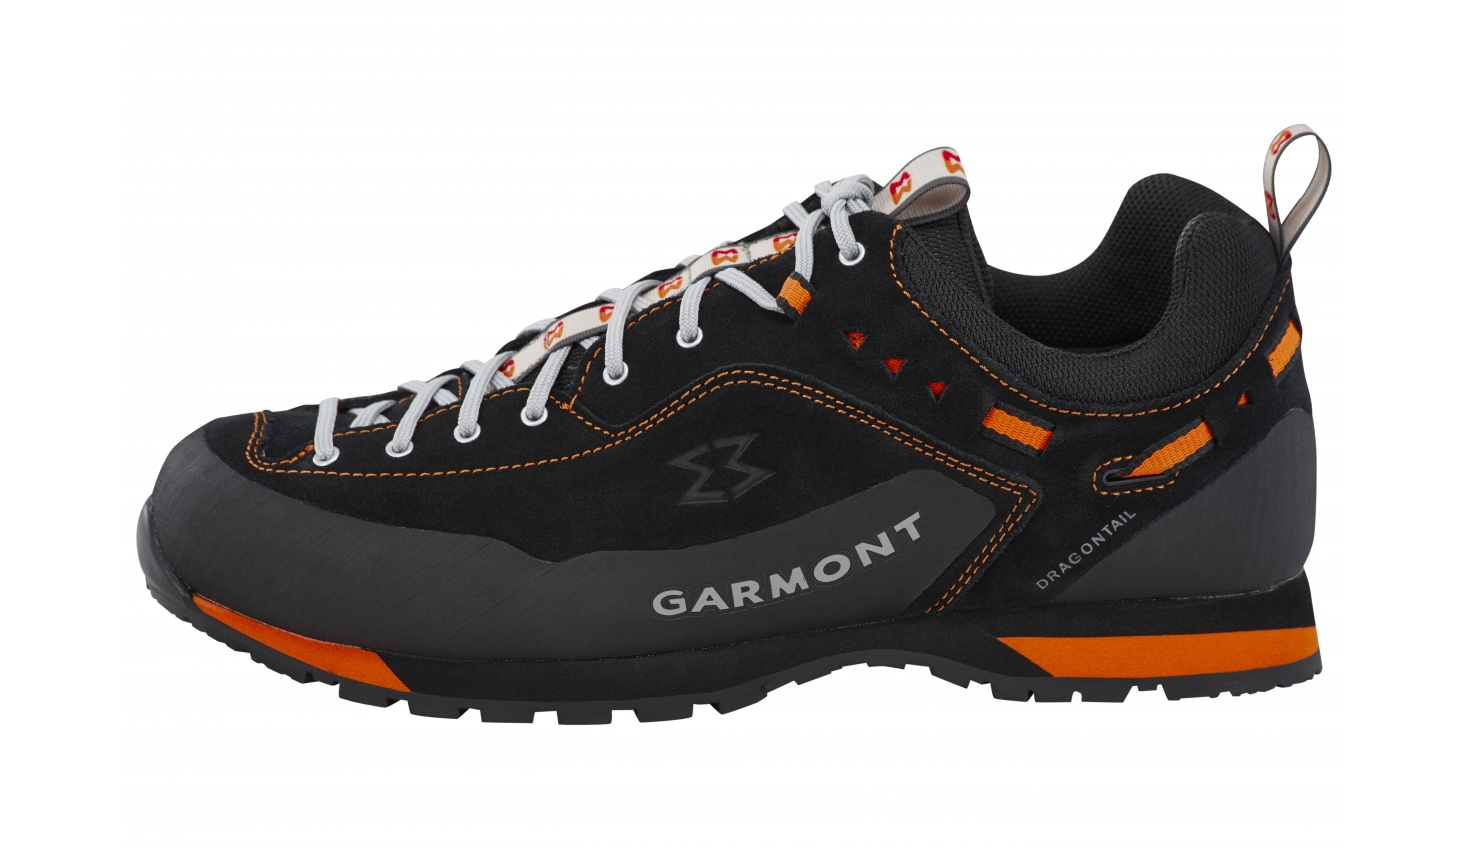 Garmont Dragontail Lt Black/Orange-30